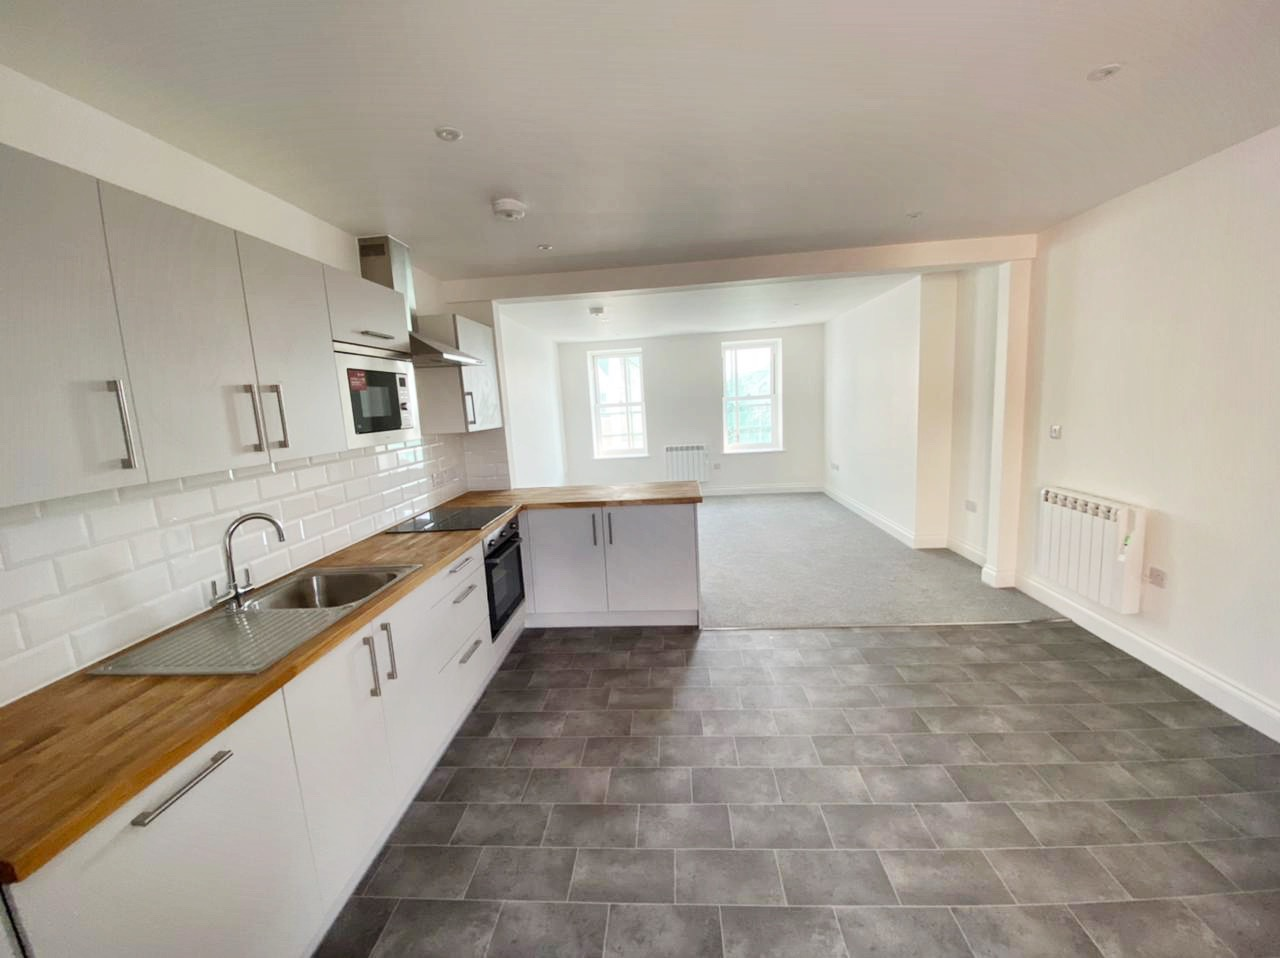 Brand New 2 Bedroom, 2 Shower Room, First Floor Apartment with Large Private Terrace Balcony